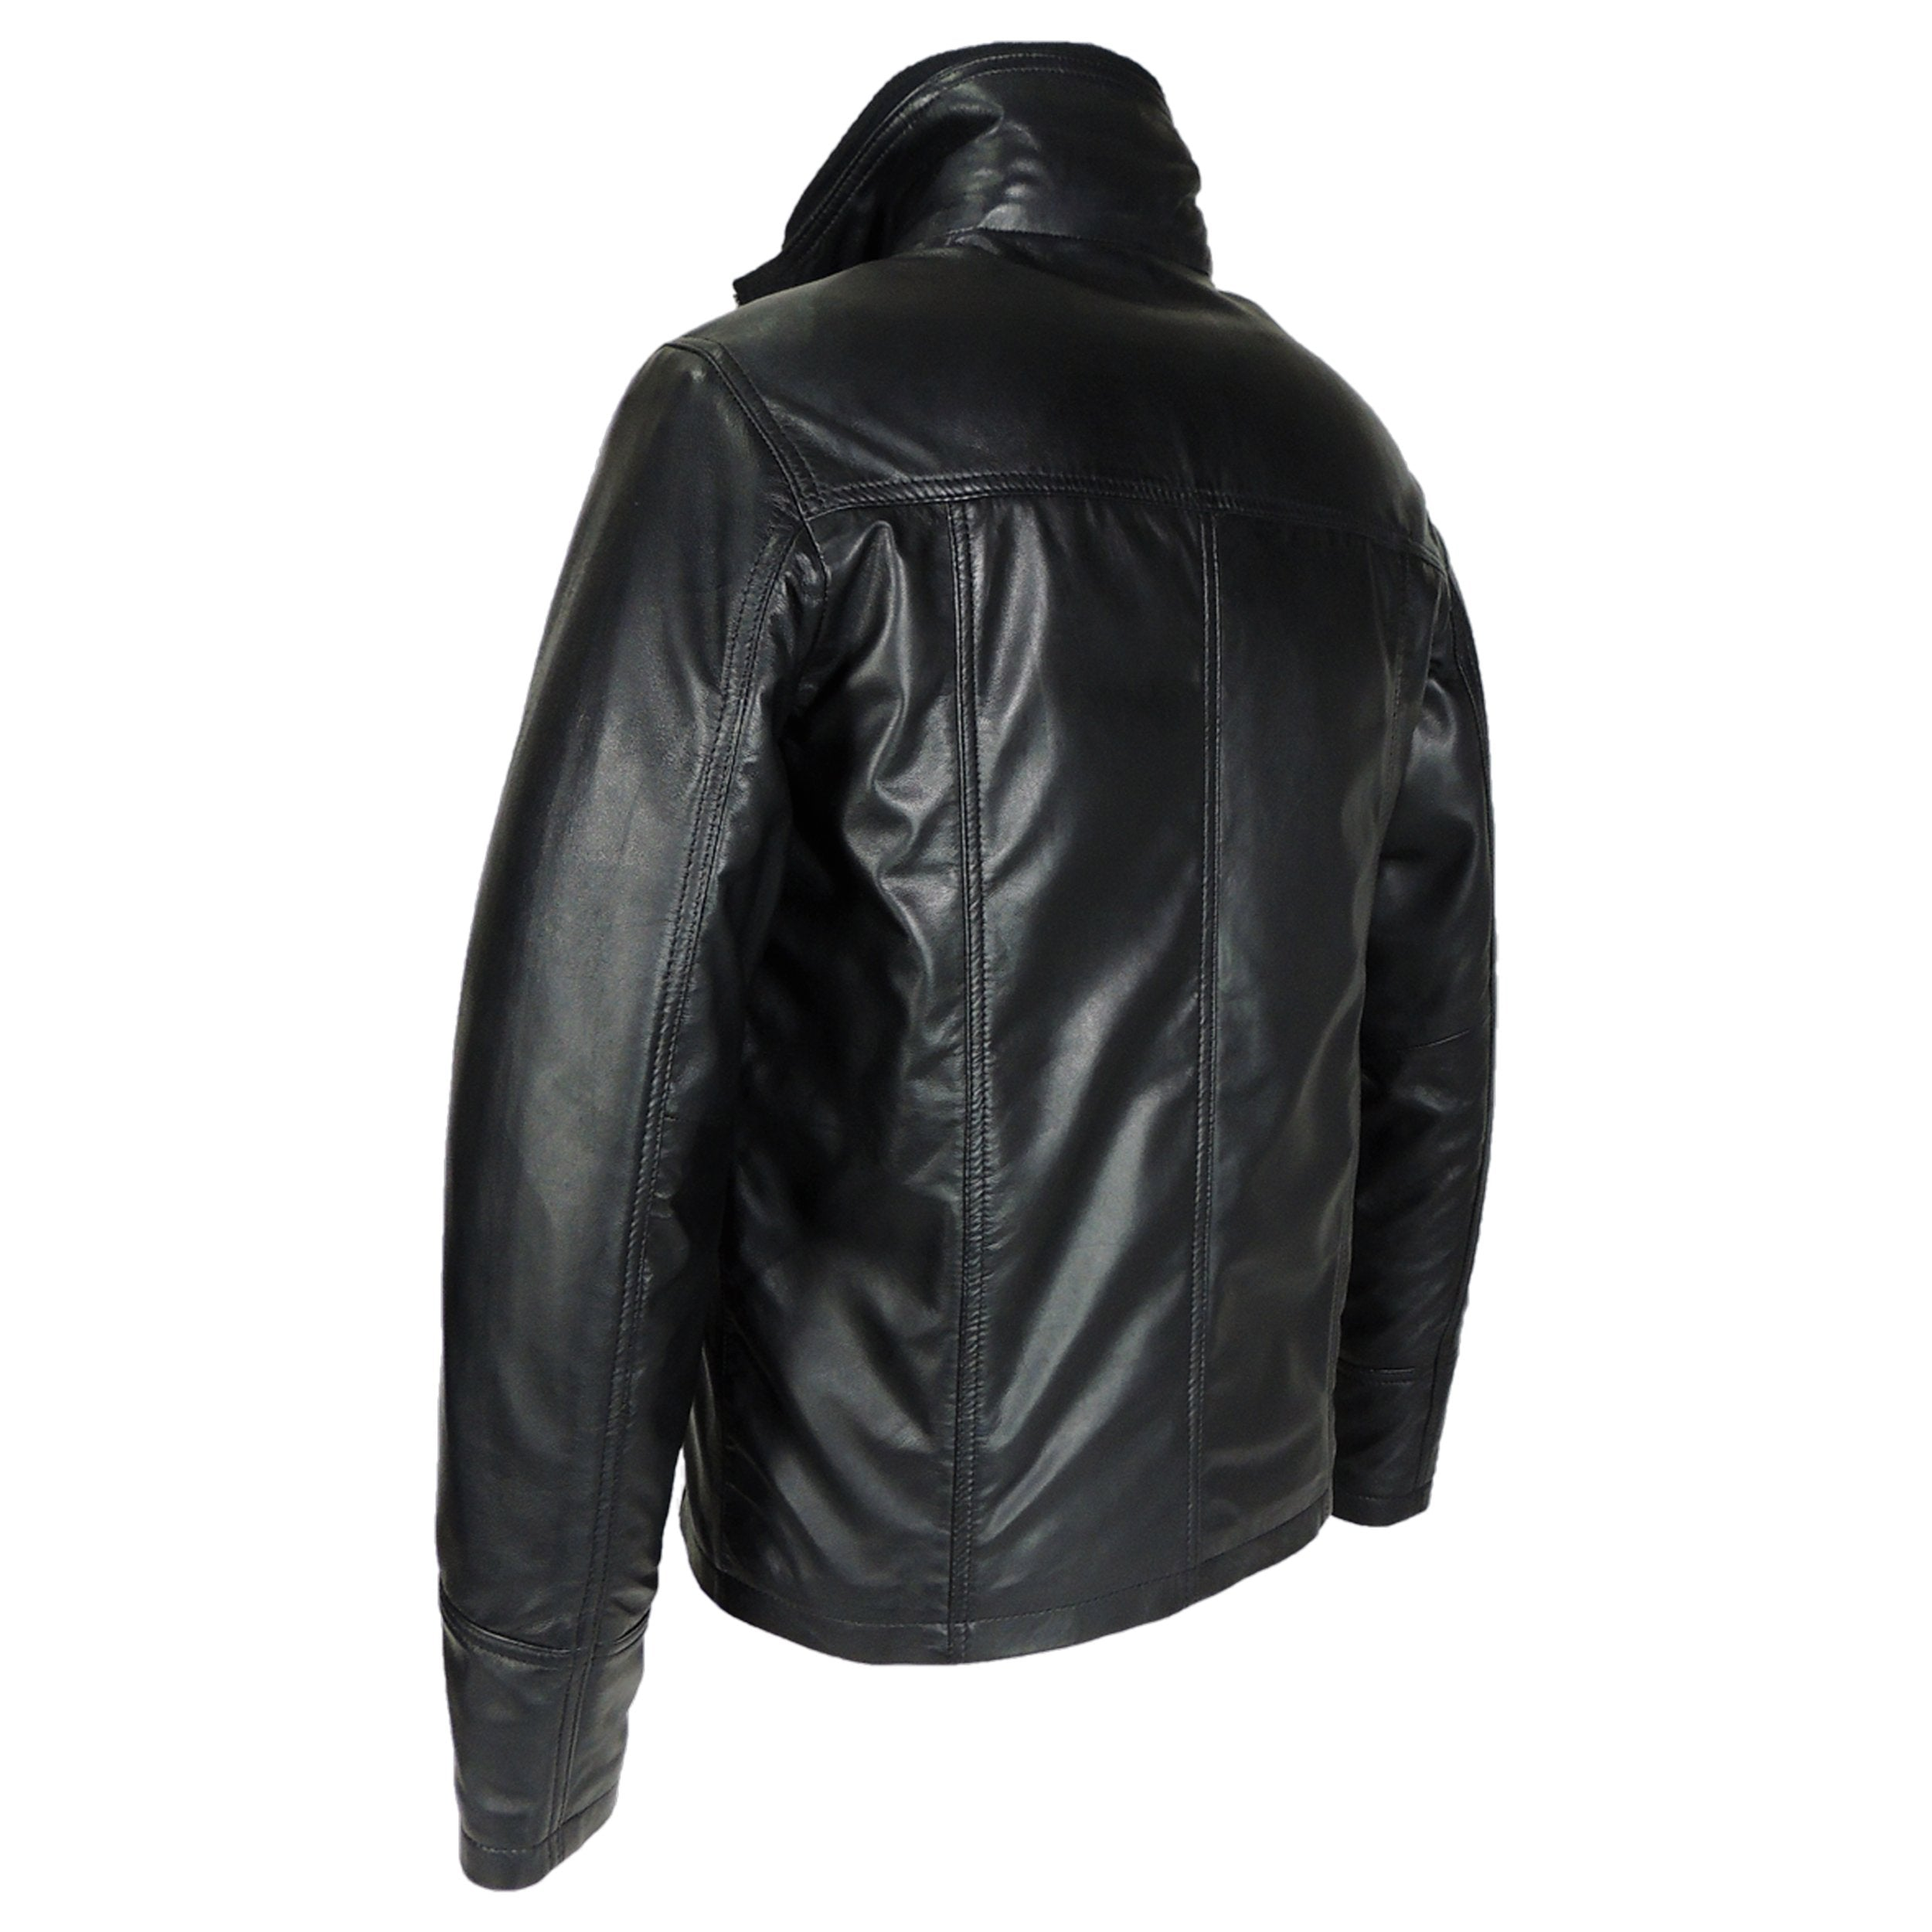 Mens Oxford Csaba Leather Jacket - Discounted! - fadcloset